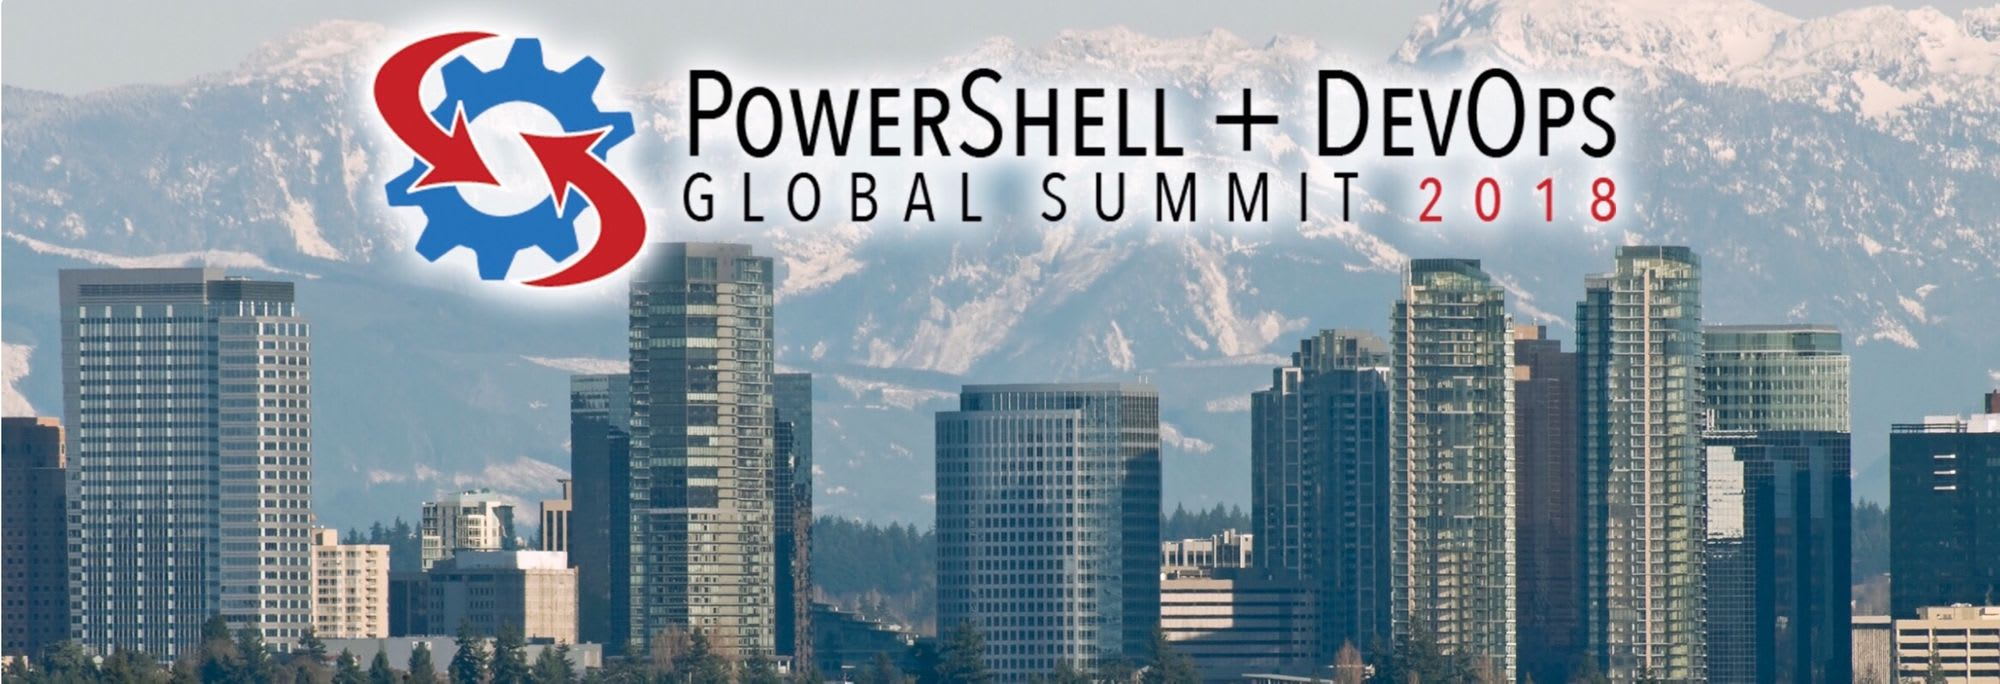 PowerShell/DevOps Summit 2018